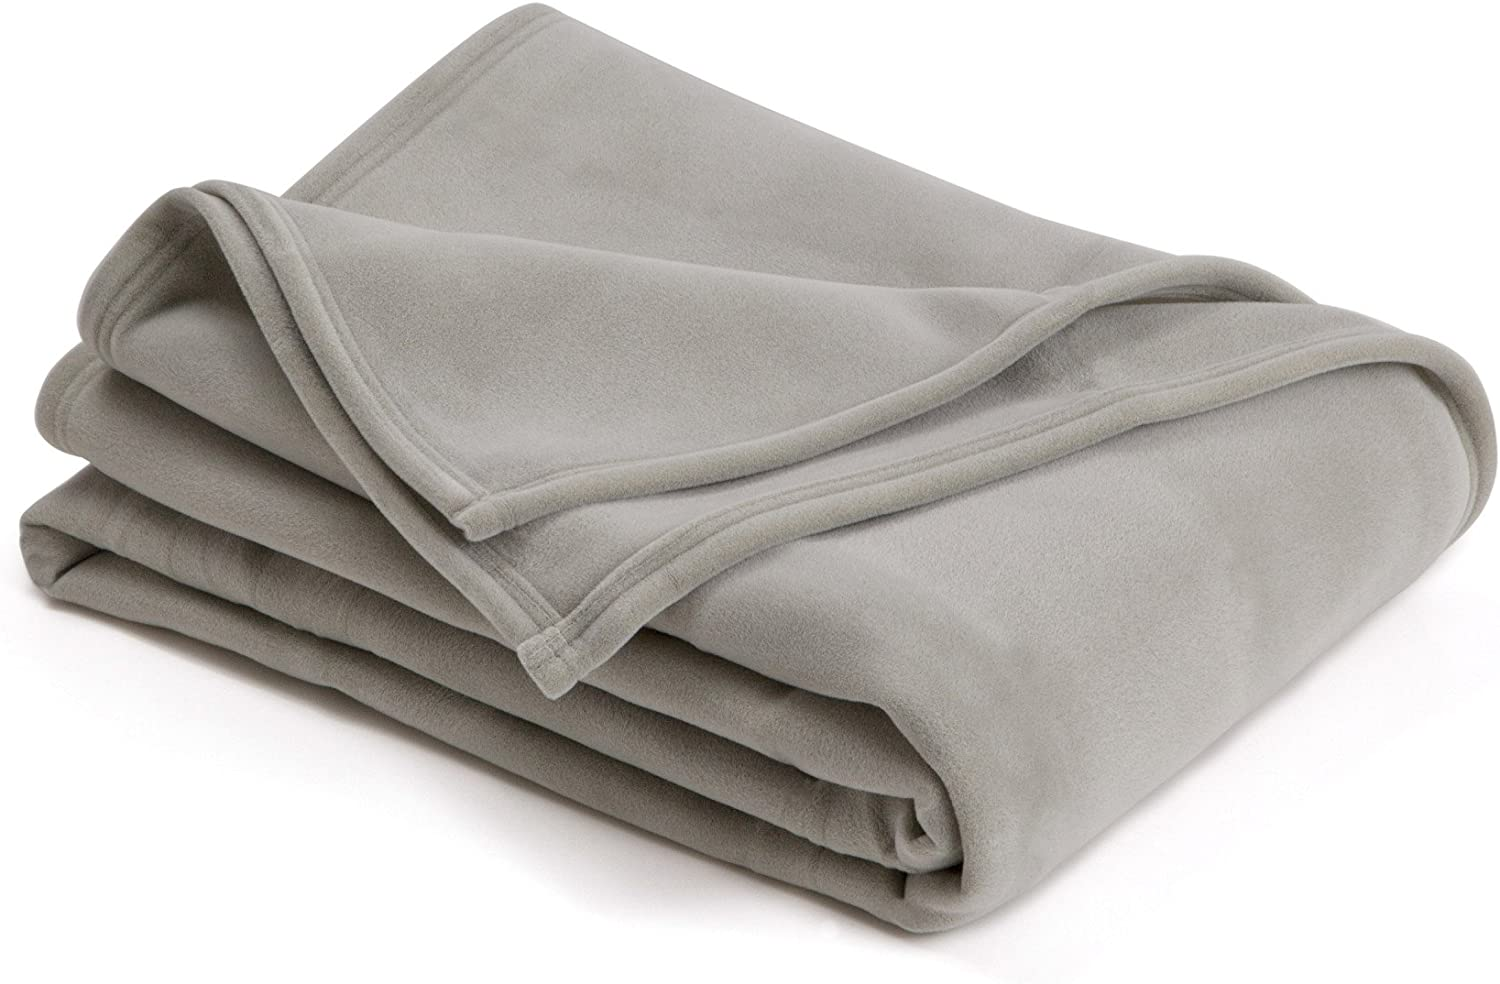 The Original Vellux Blanket - Full/Queen, Soft, Warm, Insulated, Pet-Friendly, Home Bed & Sofa - Tornado Grey